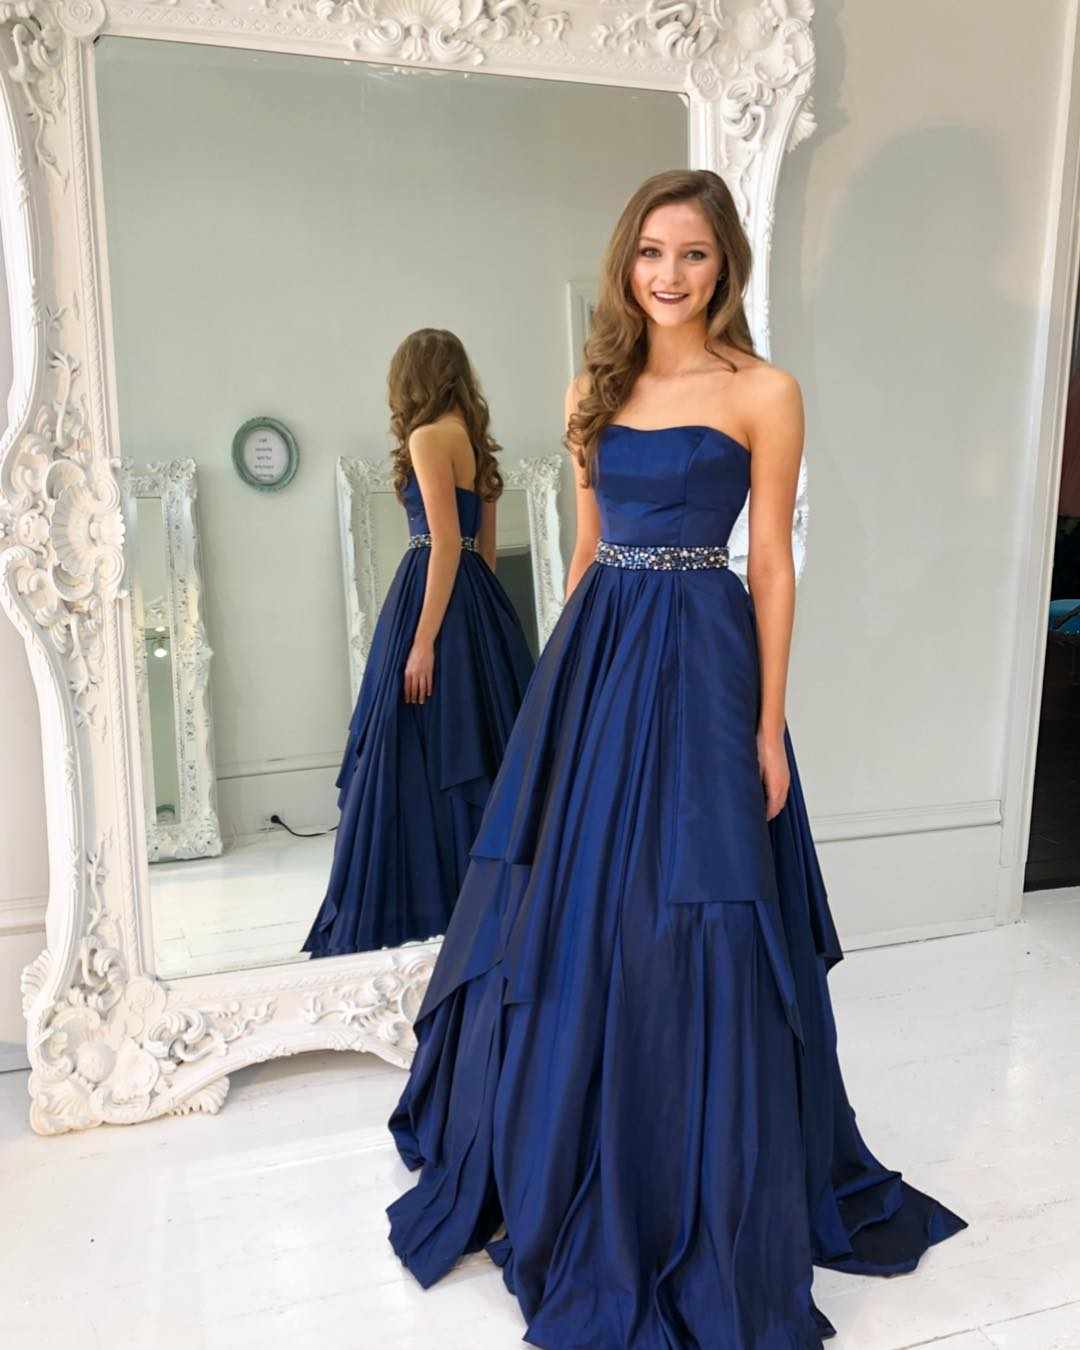 59725410f9fb Gorgeous Strapless Navy Blue Long Prom Dress · halundress